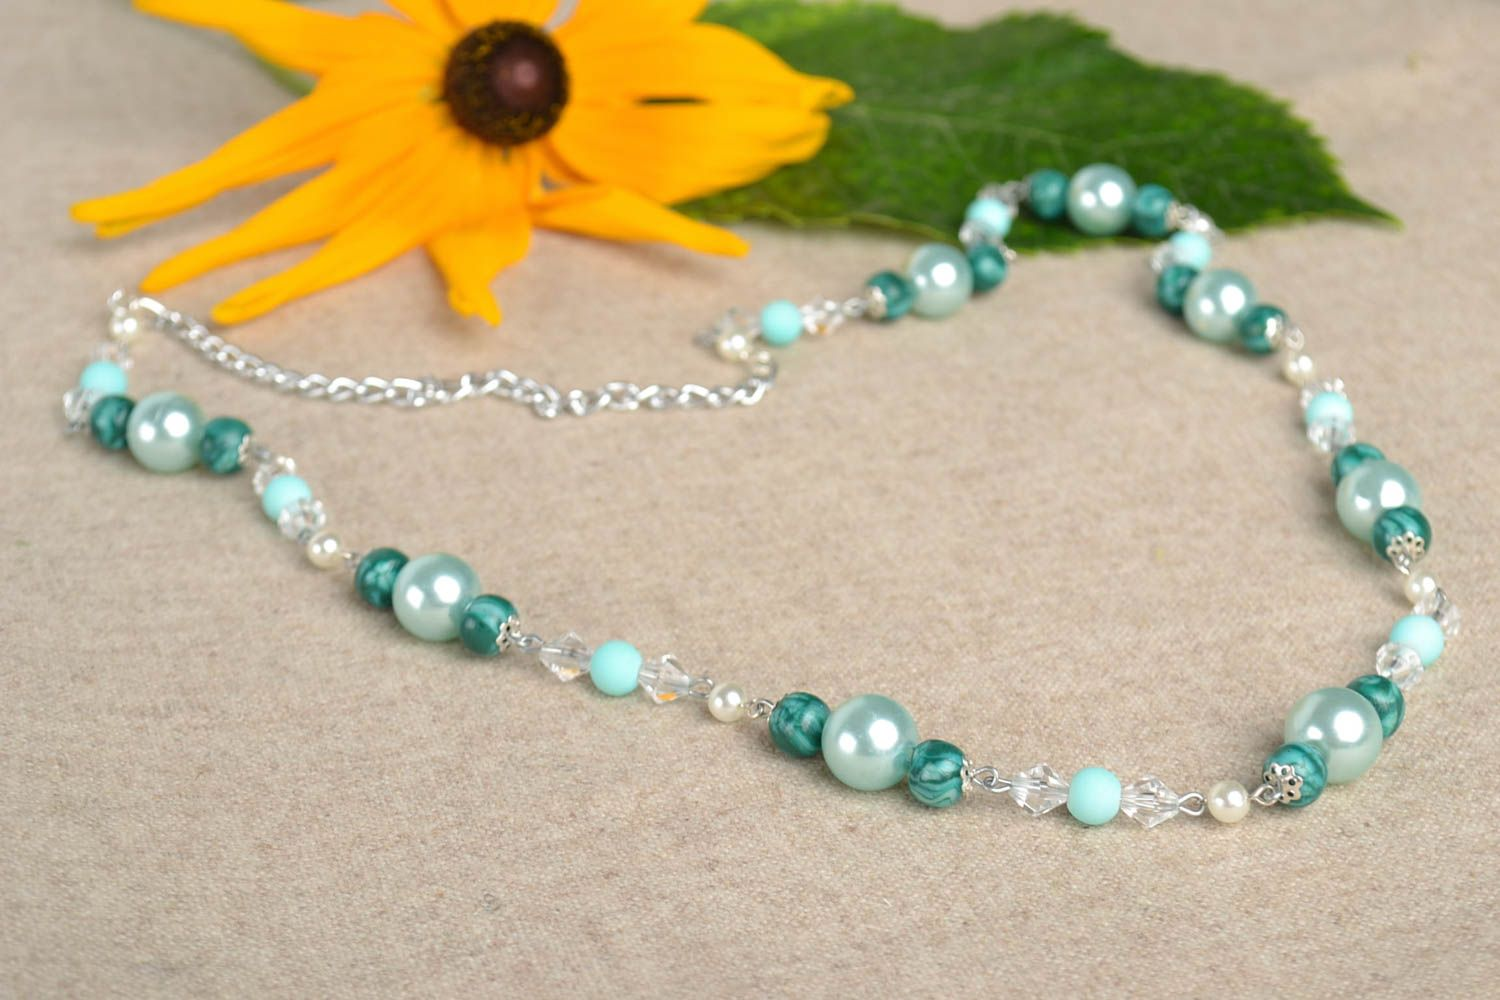 Bead necklace handmade jewelry polymer clay beaded necklace fashion accessories photo 1